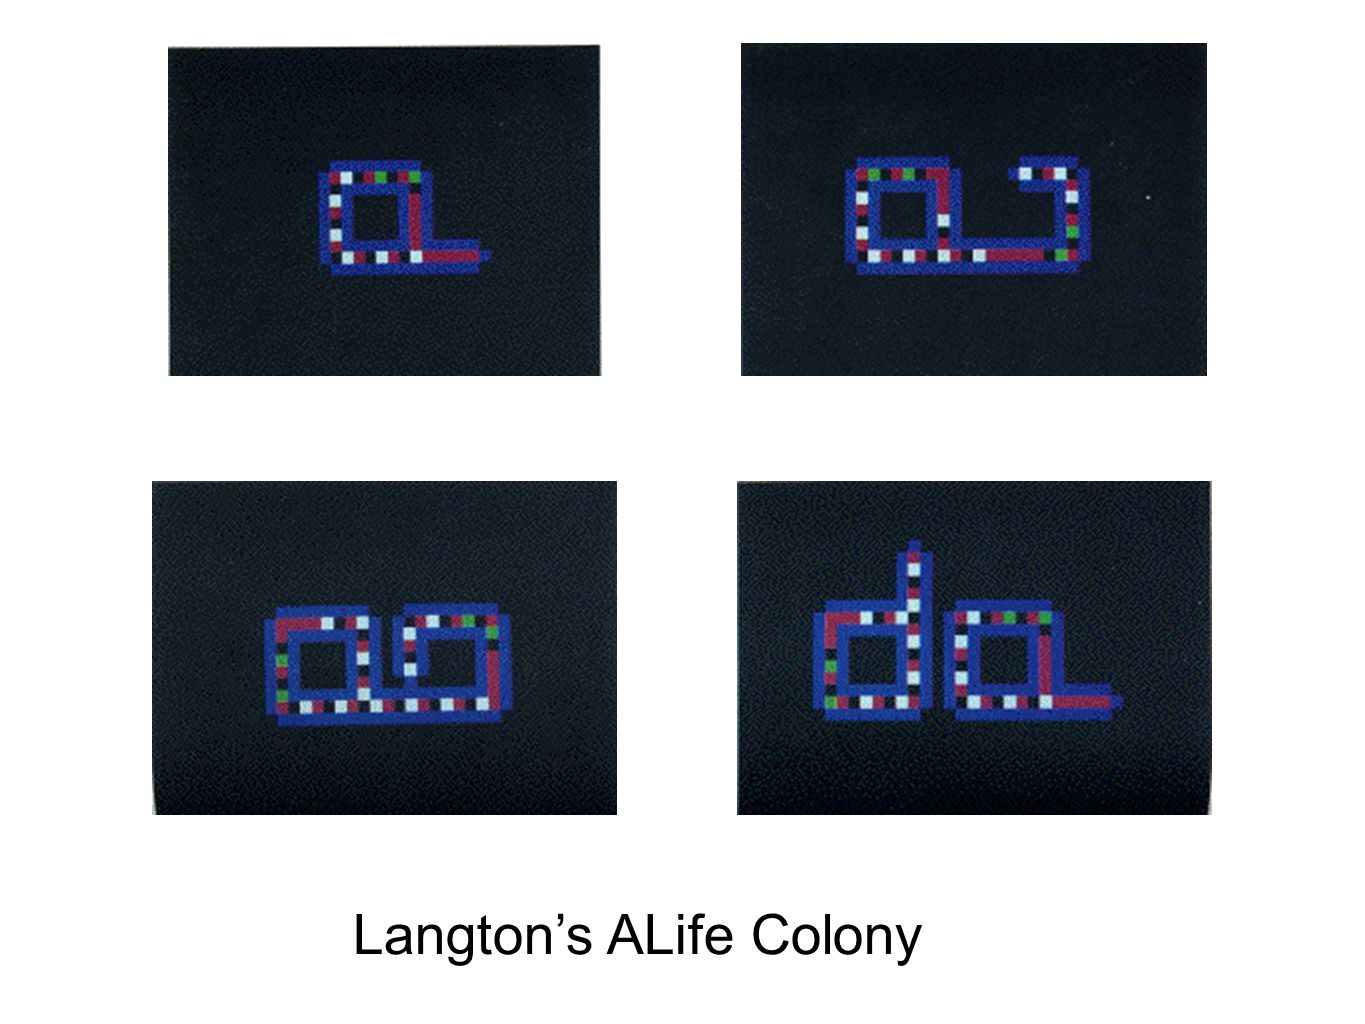 Langtons ALife Colony